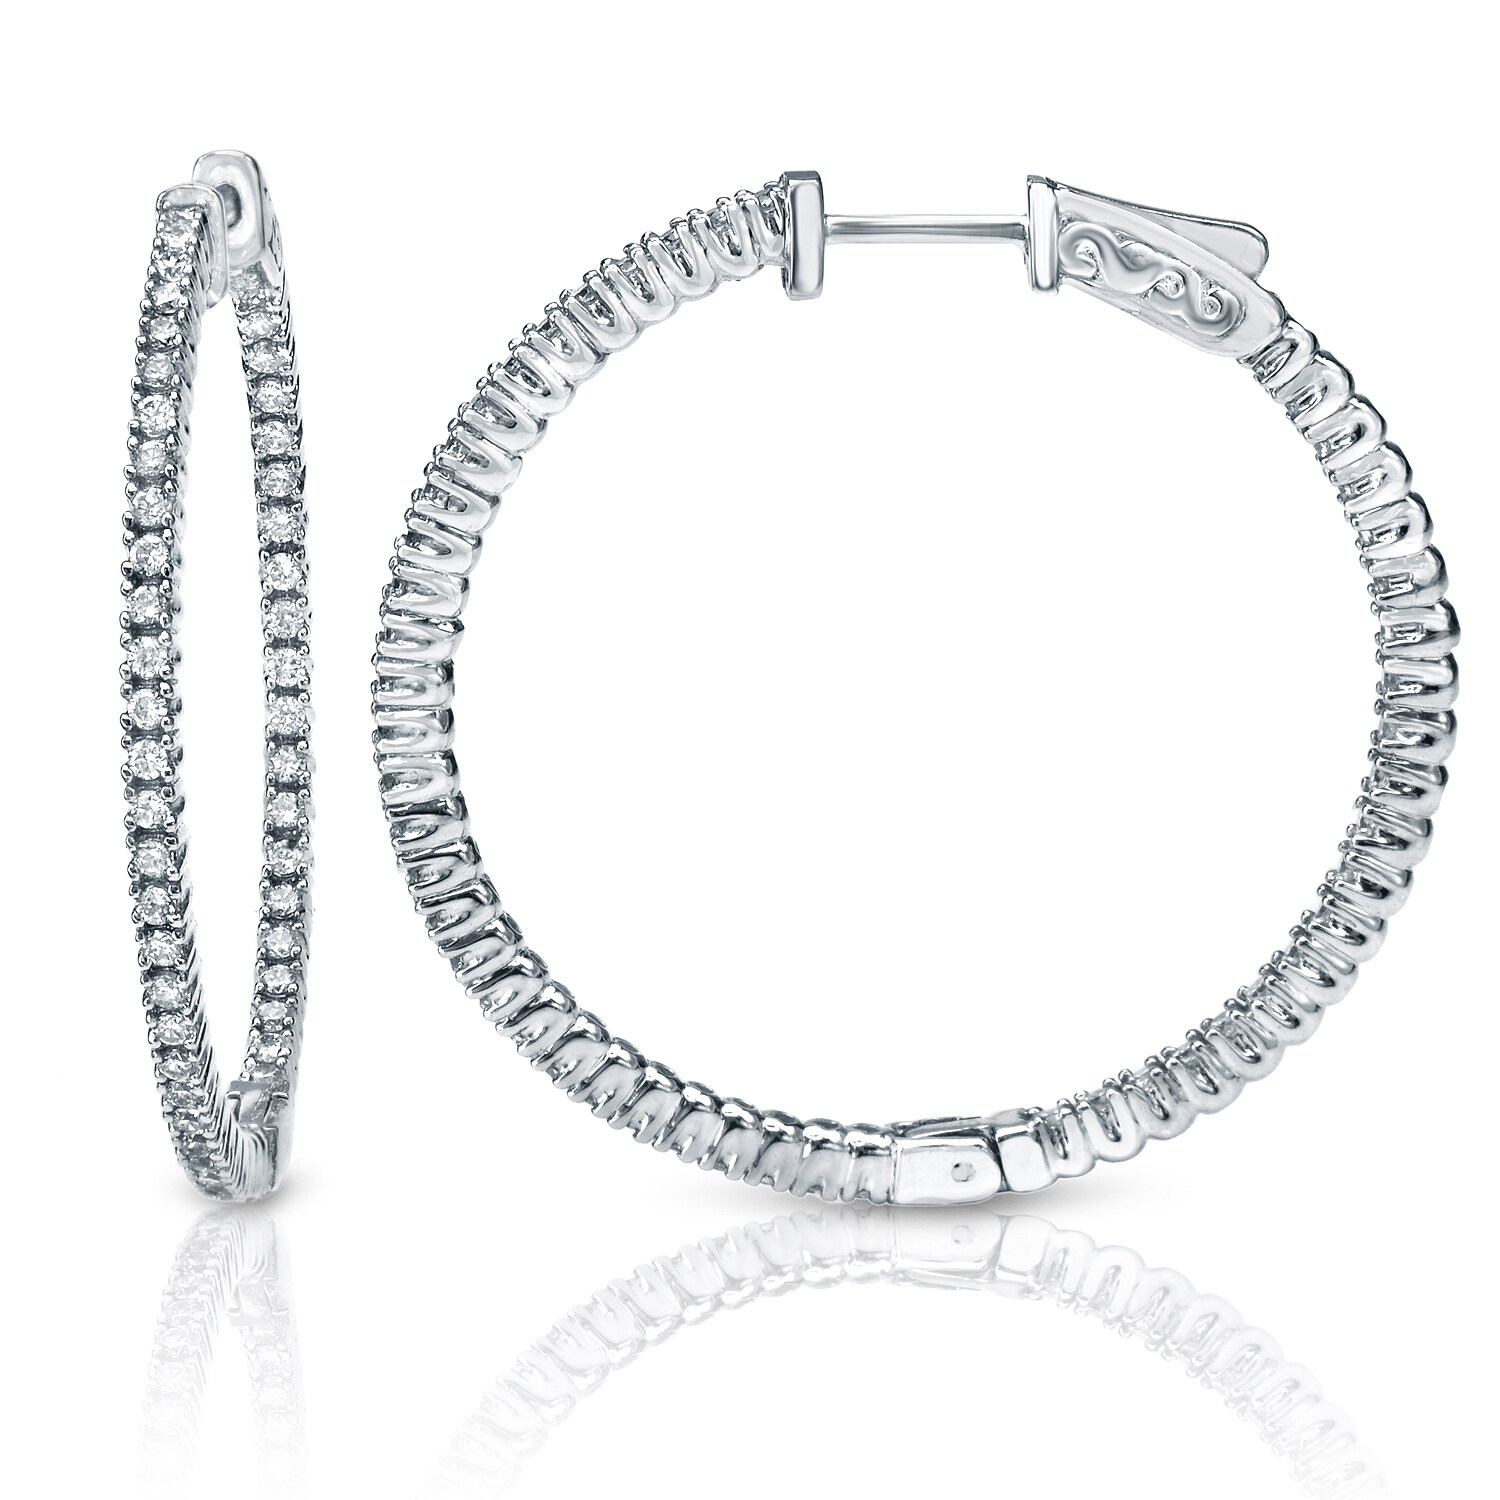 Auriya 14k White or Yellow Gold 3ct TDW 58mm Diamond Hoop Earrings|https://ak1.ostkcdn.com/images/products/8184536/82/567/Auriya-14k-White-or-Yellow-Gold-3ct-TDW-58mm-Diamond-Hoop-Earrings-H-I-SI1-SI2-P15521162.jpg?_ostk_perf_=percv&impolicy=medium